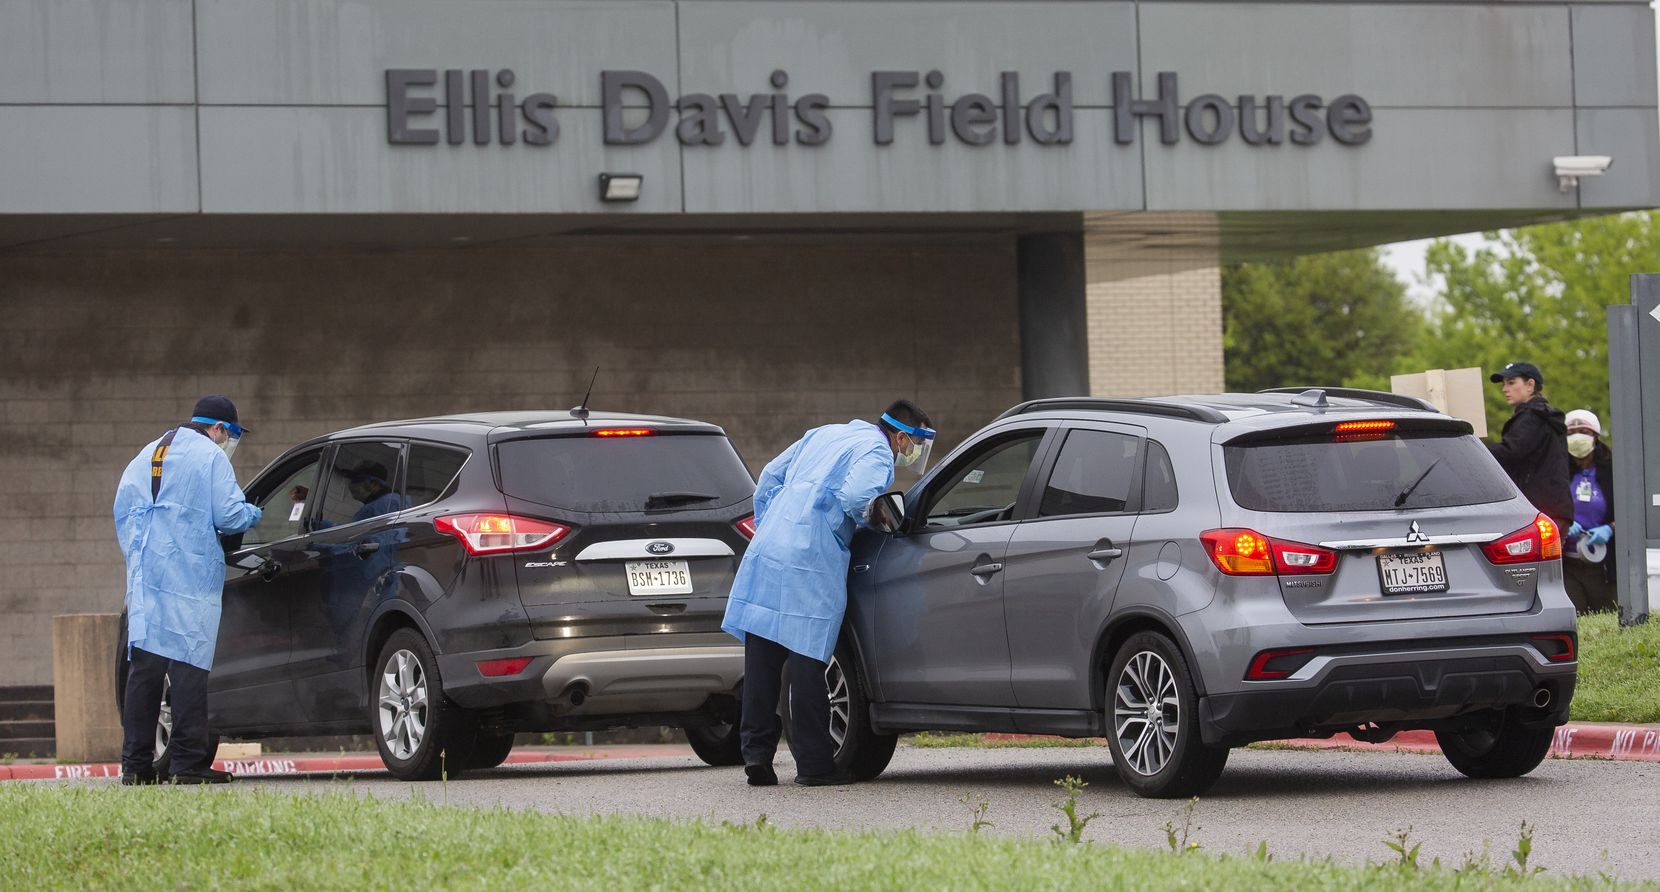 Medical professionals screen patients before letting them into a testing site at Ellis Davis Field House, 9191. S. Polk Street, near Interstate 20 in Red Bird on March 22, 2020 in Dallas. To be tested, individuals must have a fever of 99.6 degrees or above and be either 65 or older, a first responder, a health care worker or a DART bus driver.